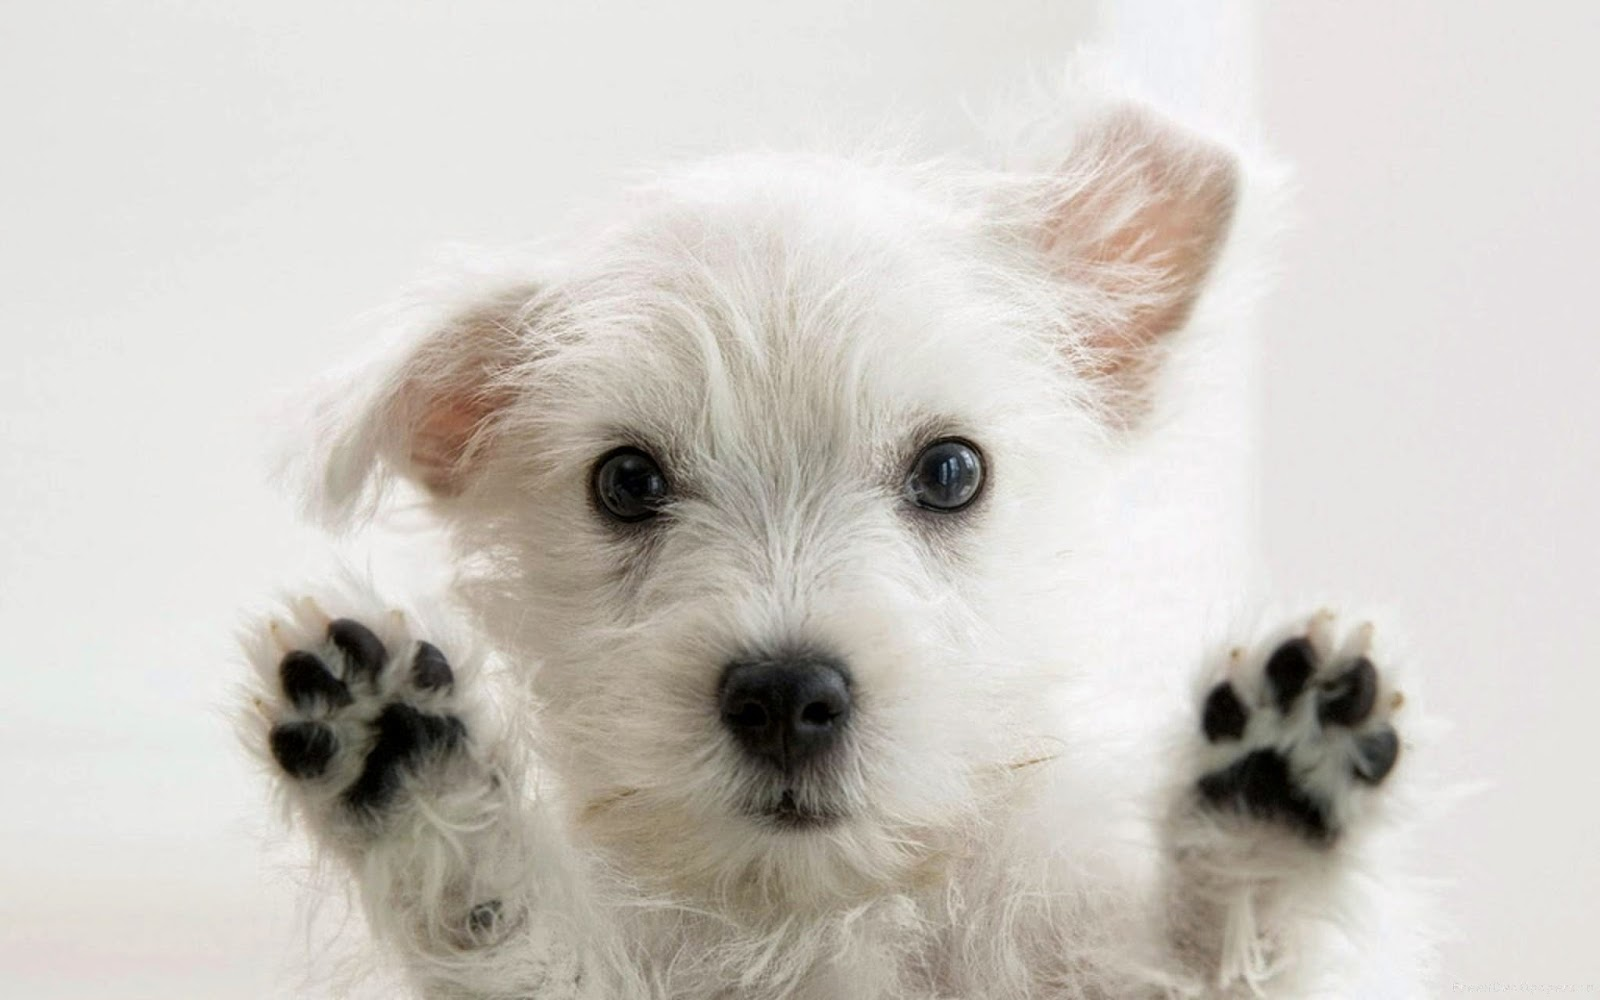 Cute white and black little dog